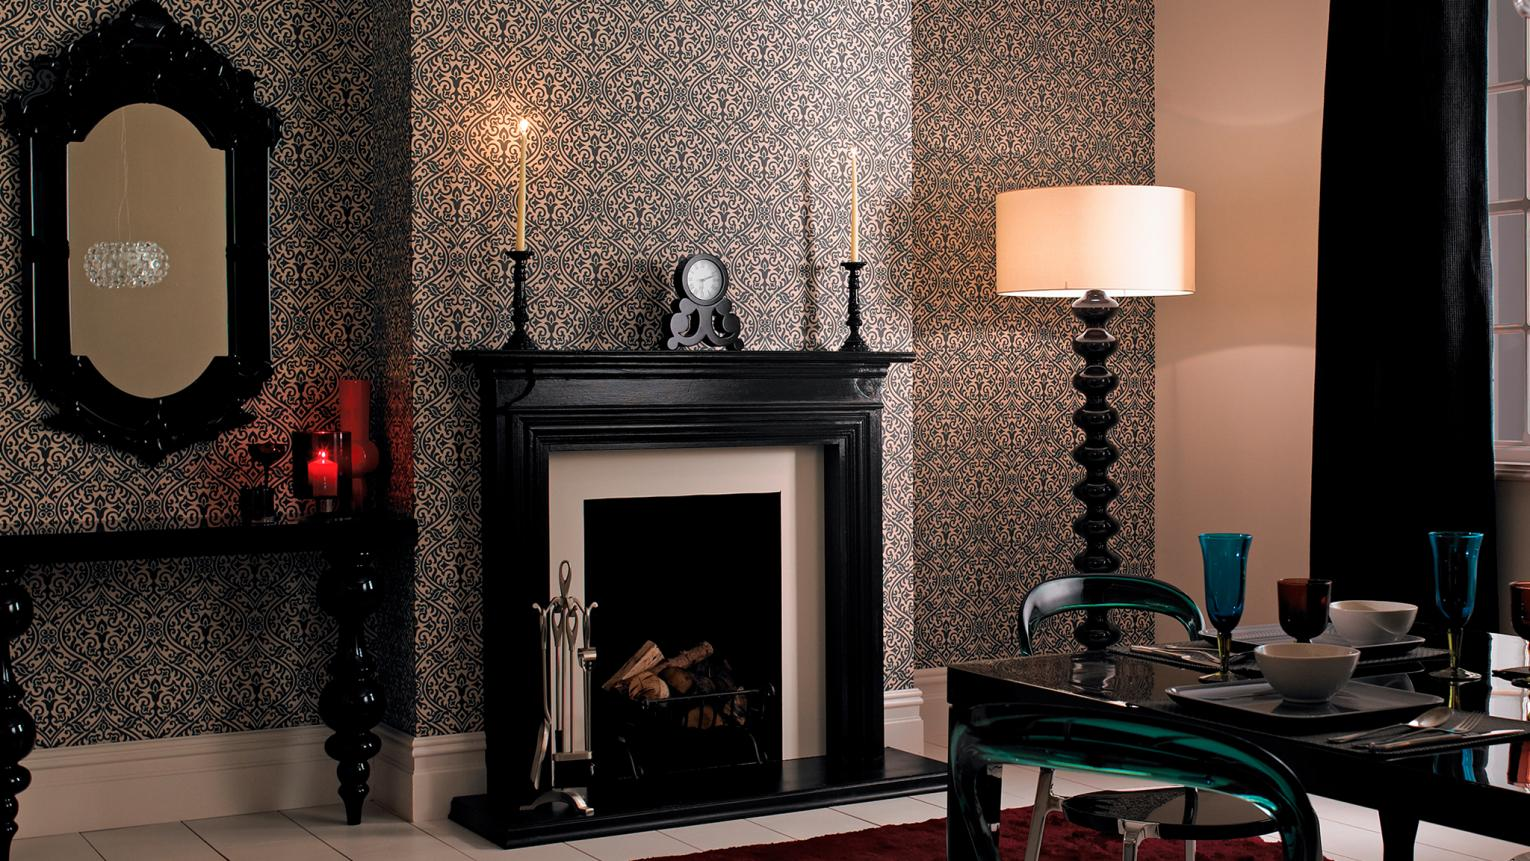 Just a touch of black can add instant drama and sophistication to a room.